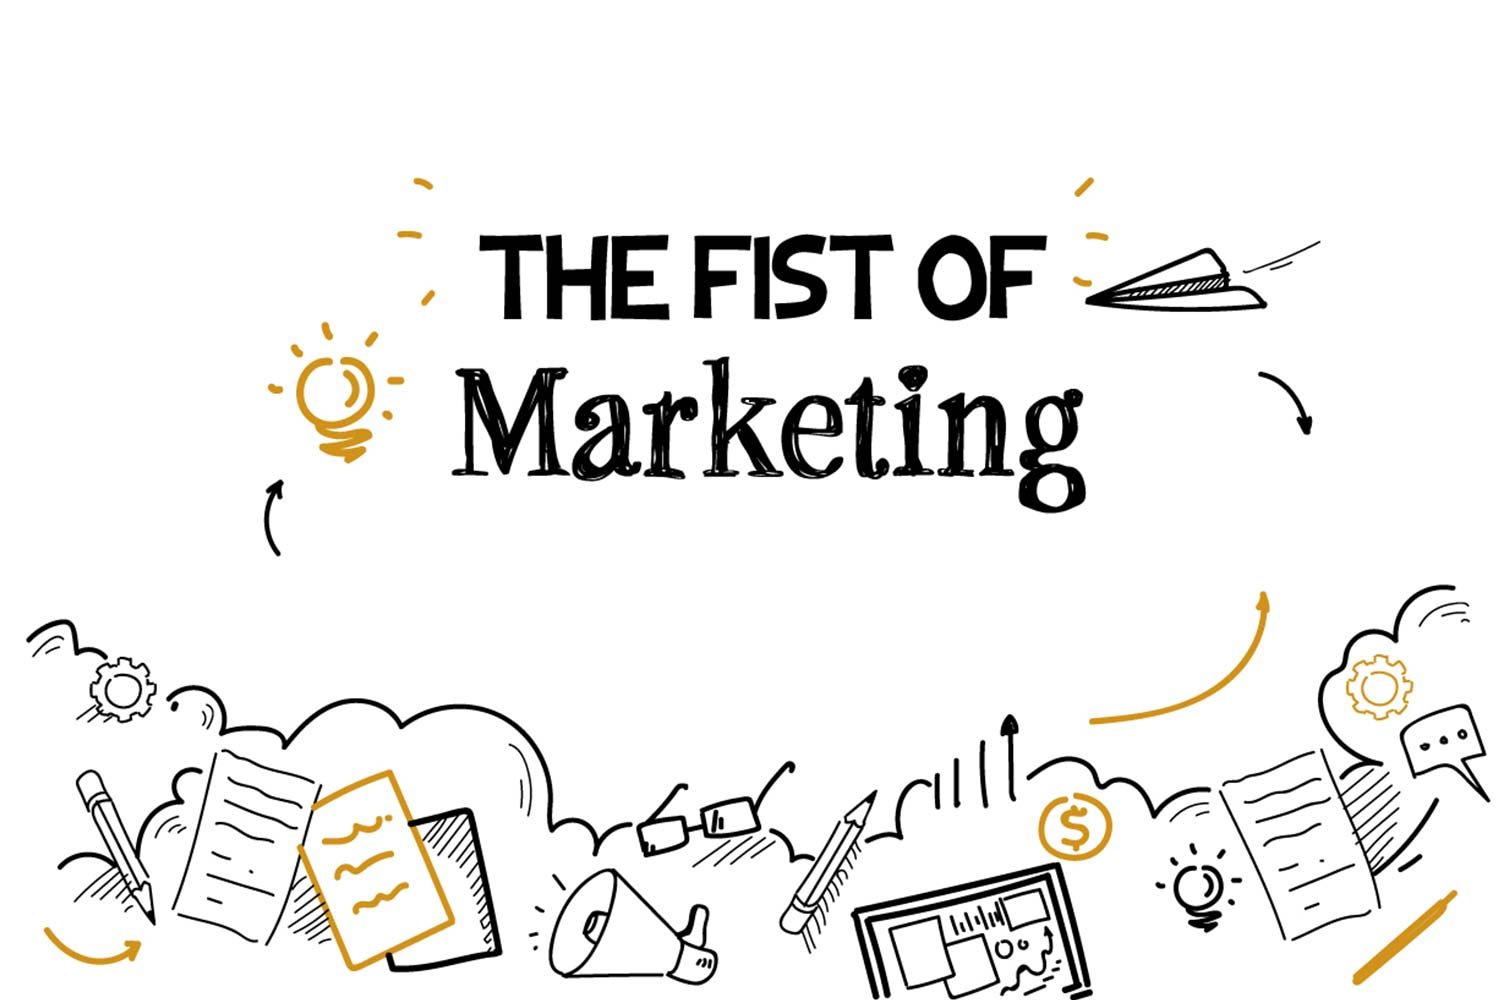 THE FIST OF MARKETING